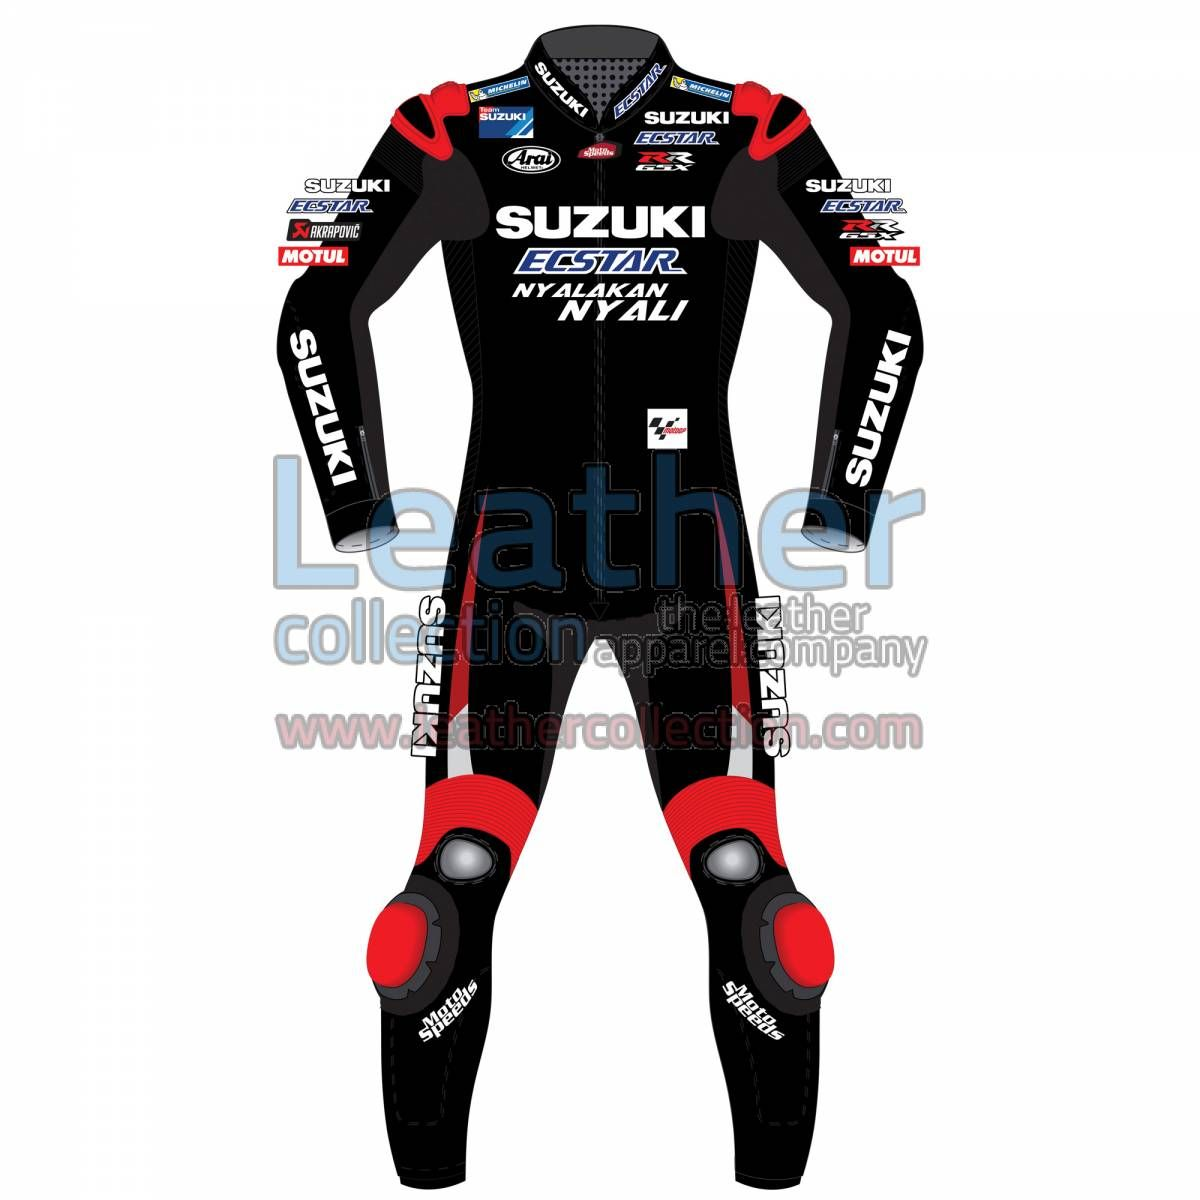 Grab maverick vinales suzuki race suit at leather collection with matching gears of colors of your own choice made to measure tailor fitting